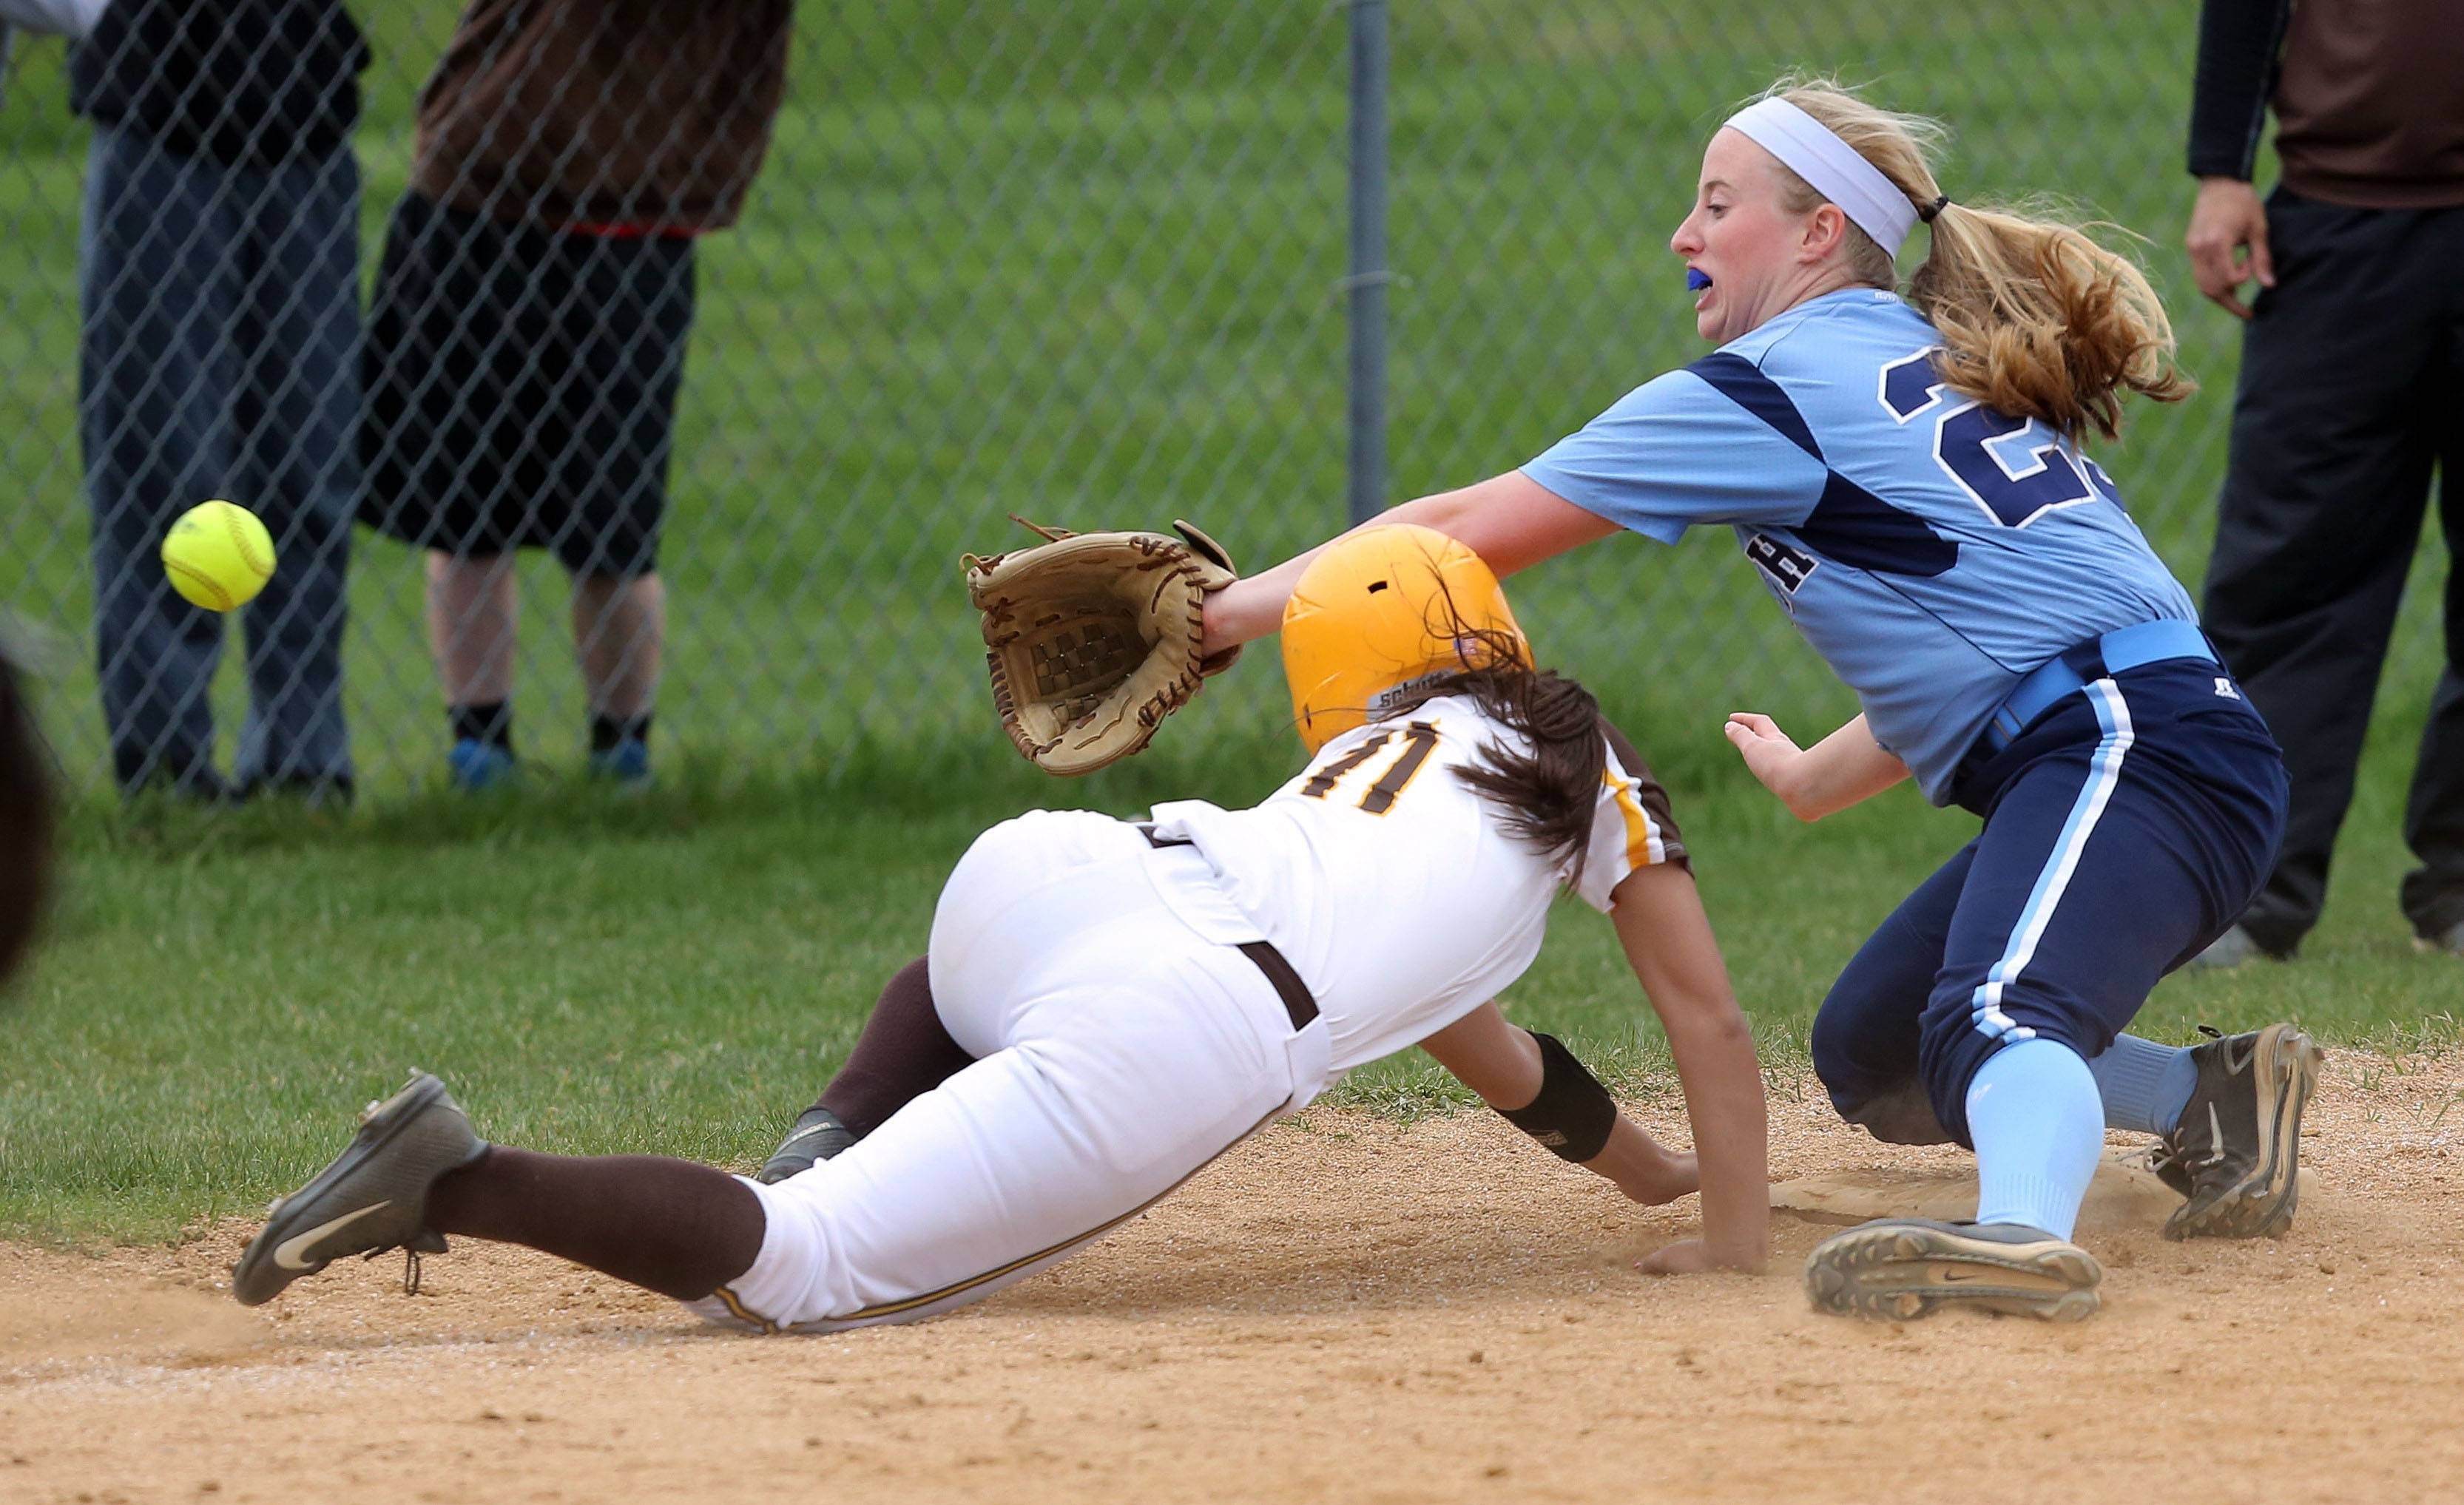 Carmel's Anne Poll dives back safely to third as Nazareth's Colleen McGivney makes the play Wednesday in Mundelein.